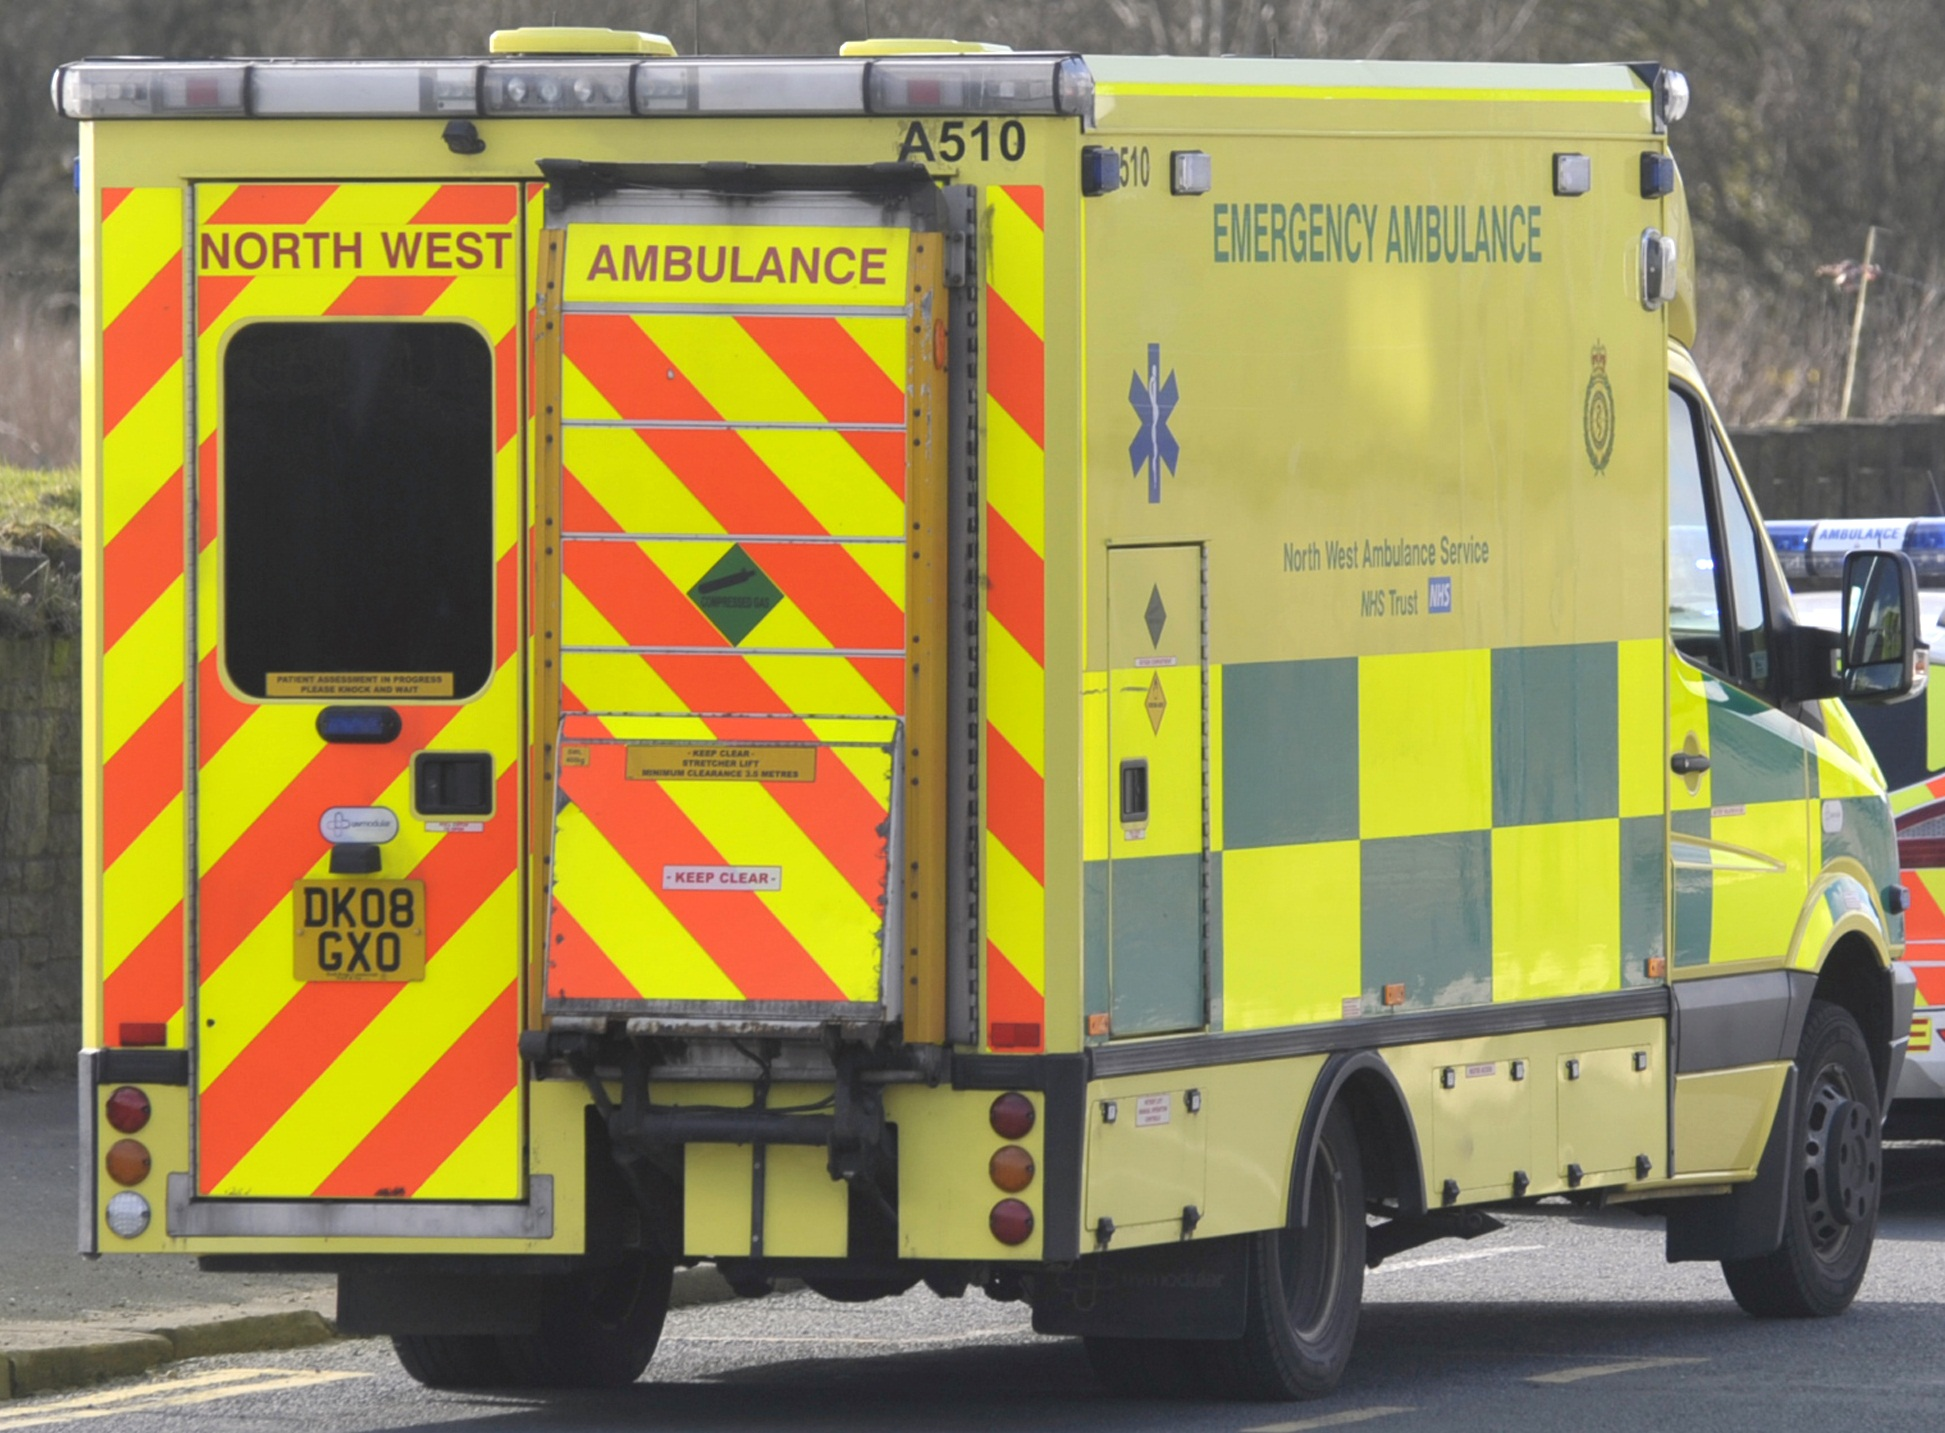 50 patients left waiting in ambulances outside A&E for more than an hour - in just one month